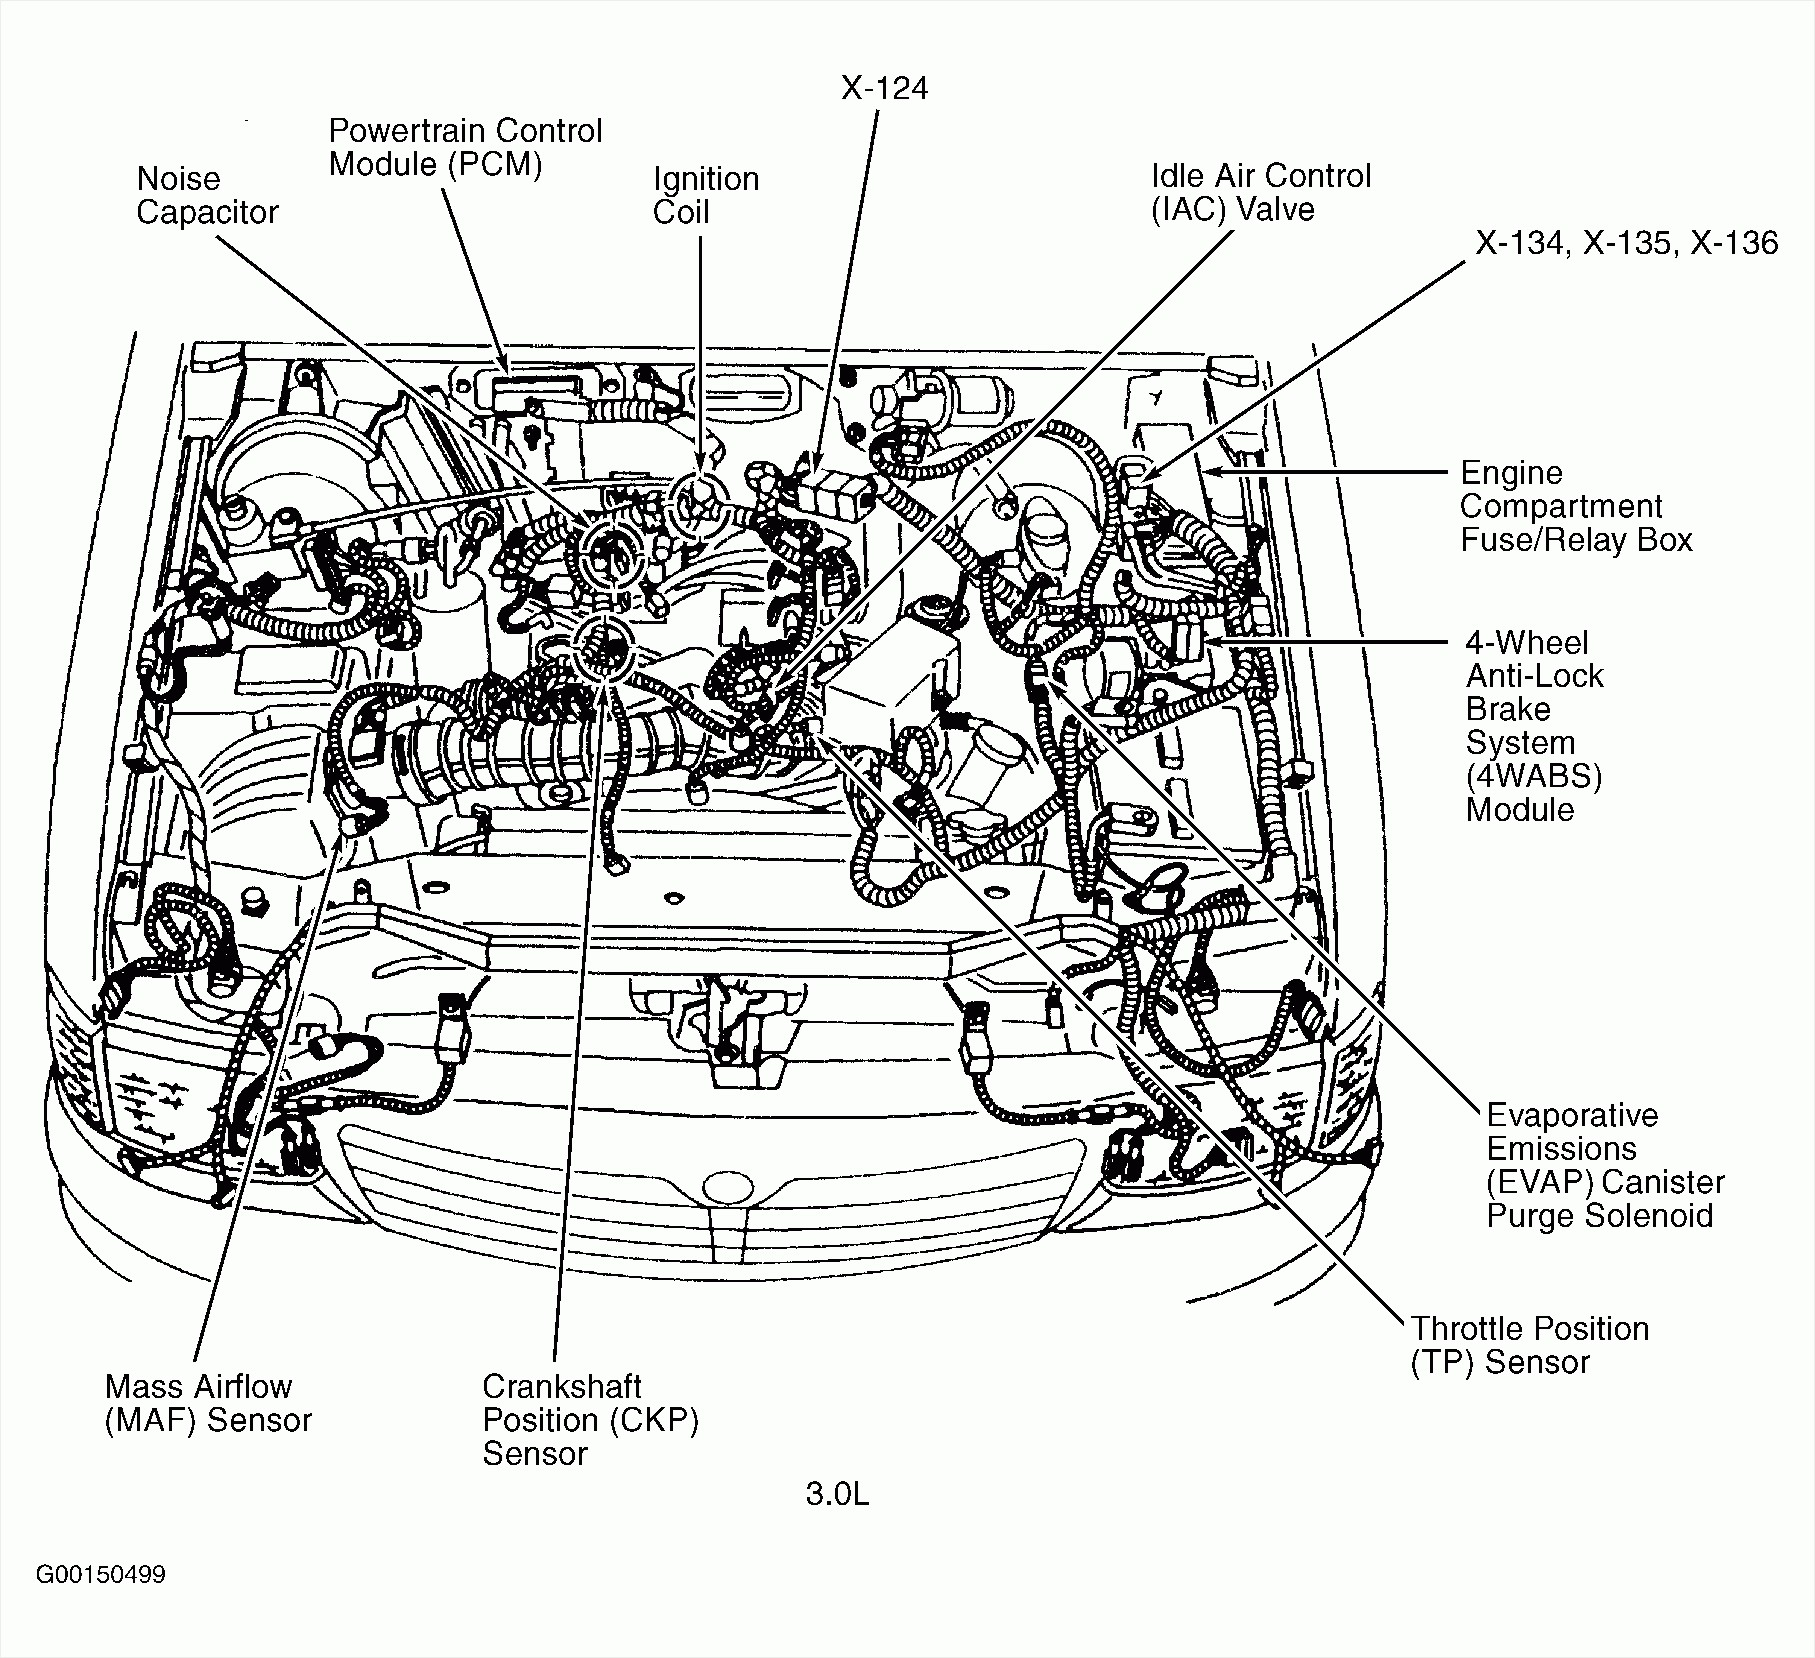 hight resolution of 2004 mazda mpv fuse box wiring diagram inside2001 mazda mpv fuse box diagram wiring diagram used